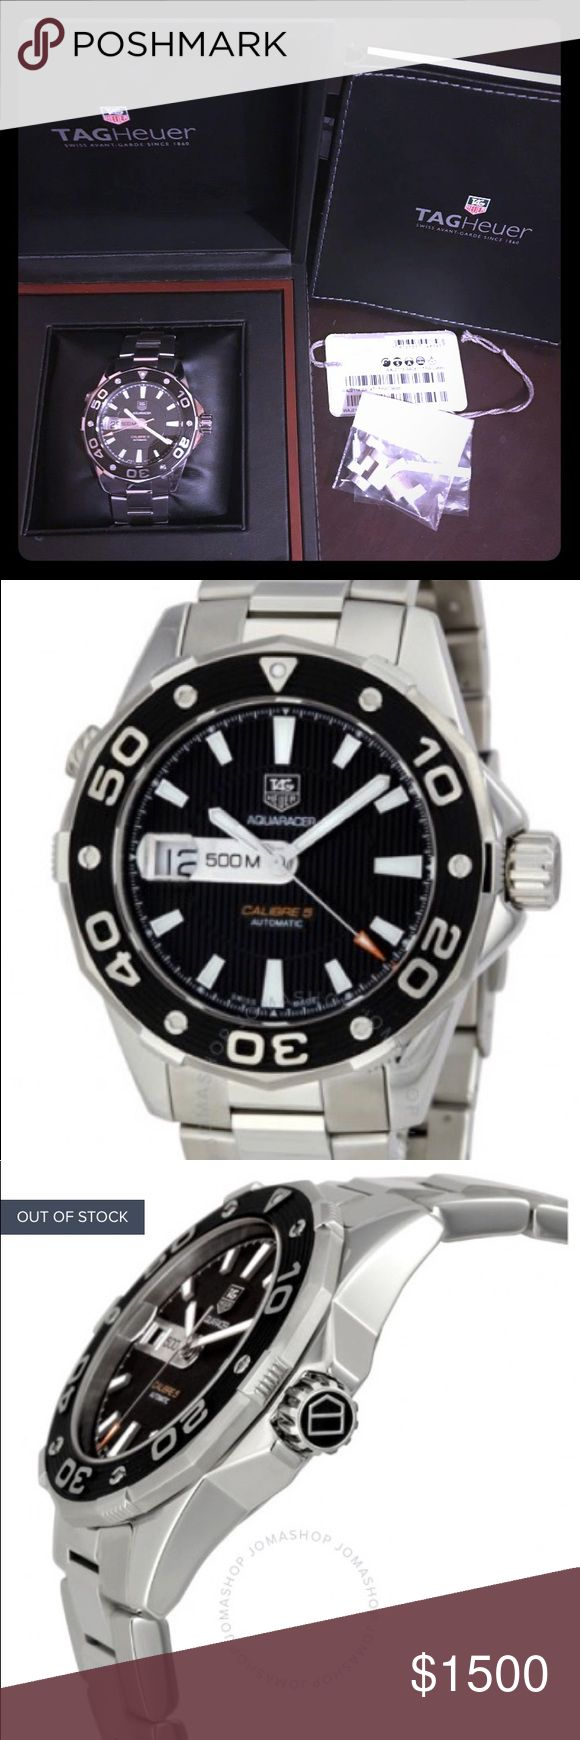 TAG HEUER Aquaracer Calibre 5 Mens Watch ***Great condition. See pictures  ***FEEL FREE TO MAKE AN OFFER   ***Accessories: 3 extra links, origins tag, original box and manual  ***Automatic ***Calibre 5 ***500 meter  ***Chrome and Brushed Chrome    Price paid over $3,200  FREE SHIPPING. PRIORITY USPS  AND EXTRA INSURANCE (mail purposes)   Ask for extra pictures or any other questions !!!! Tag Heuer Accessories Watches